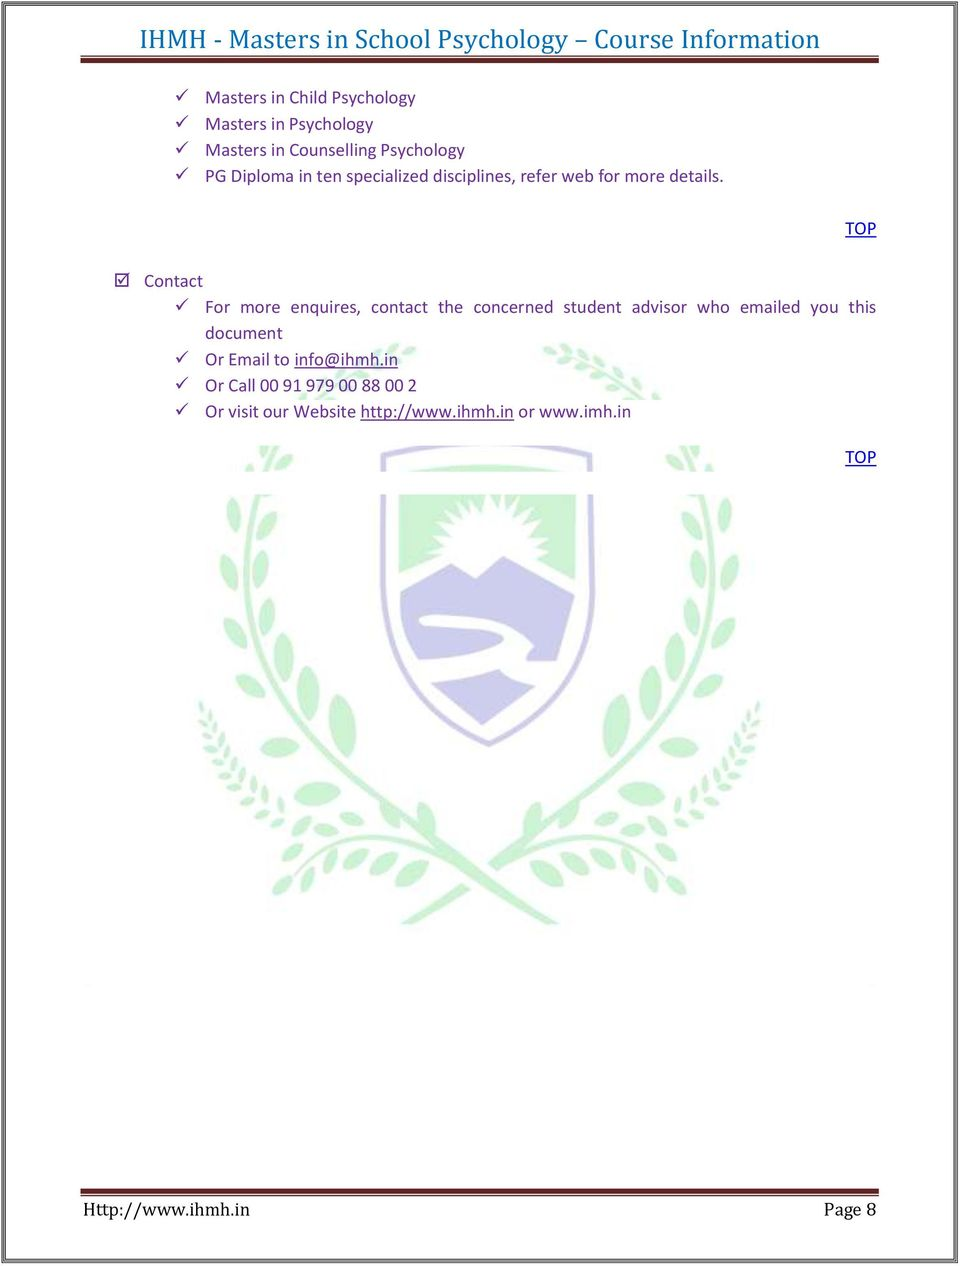 Contact For more enquires, contact the concerned student advisor who emailed you this document